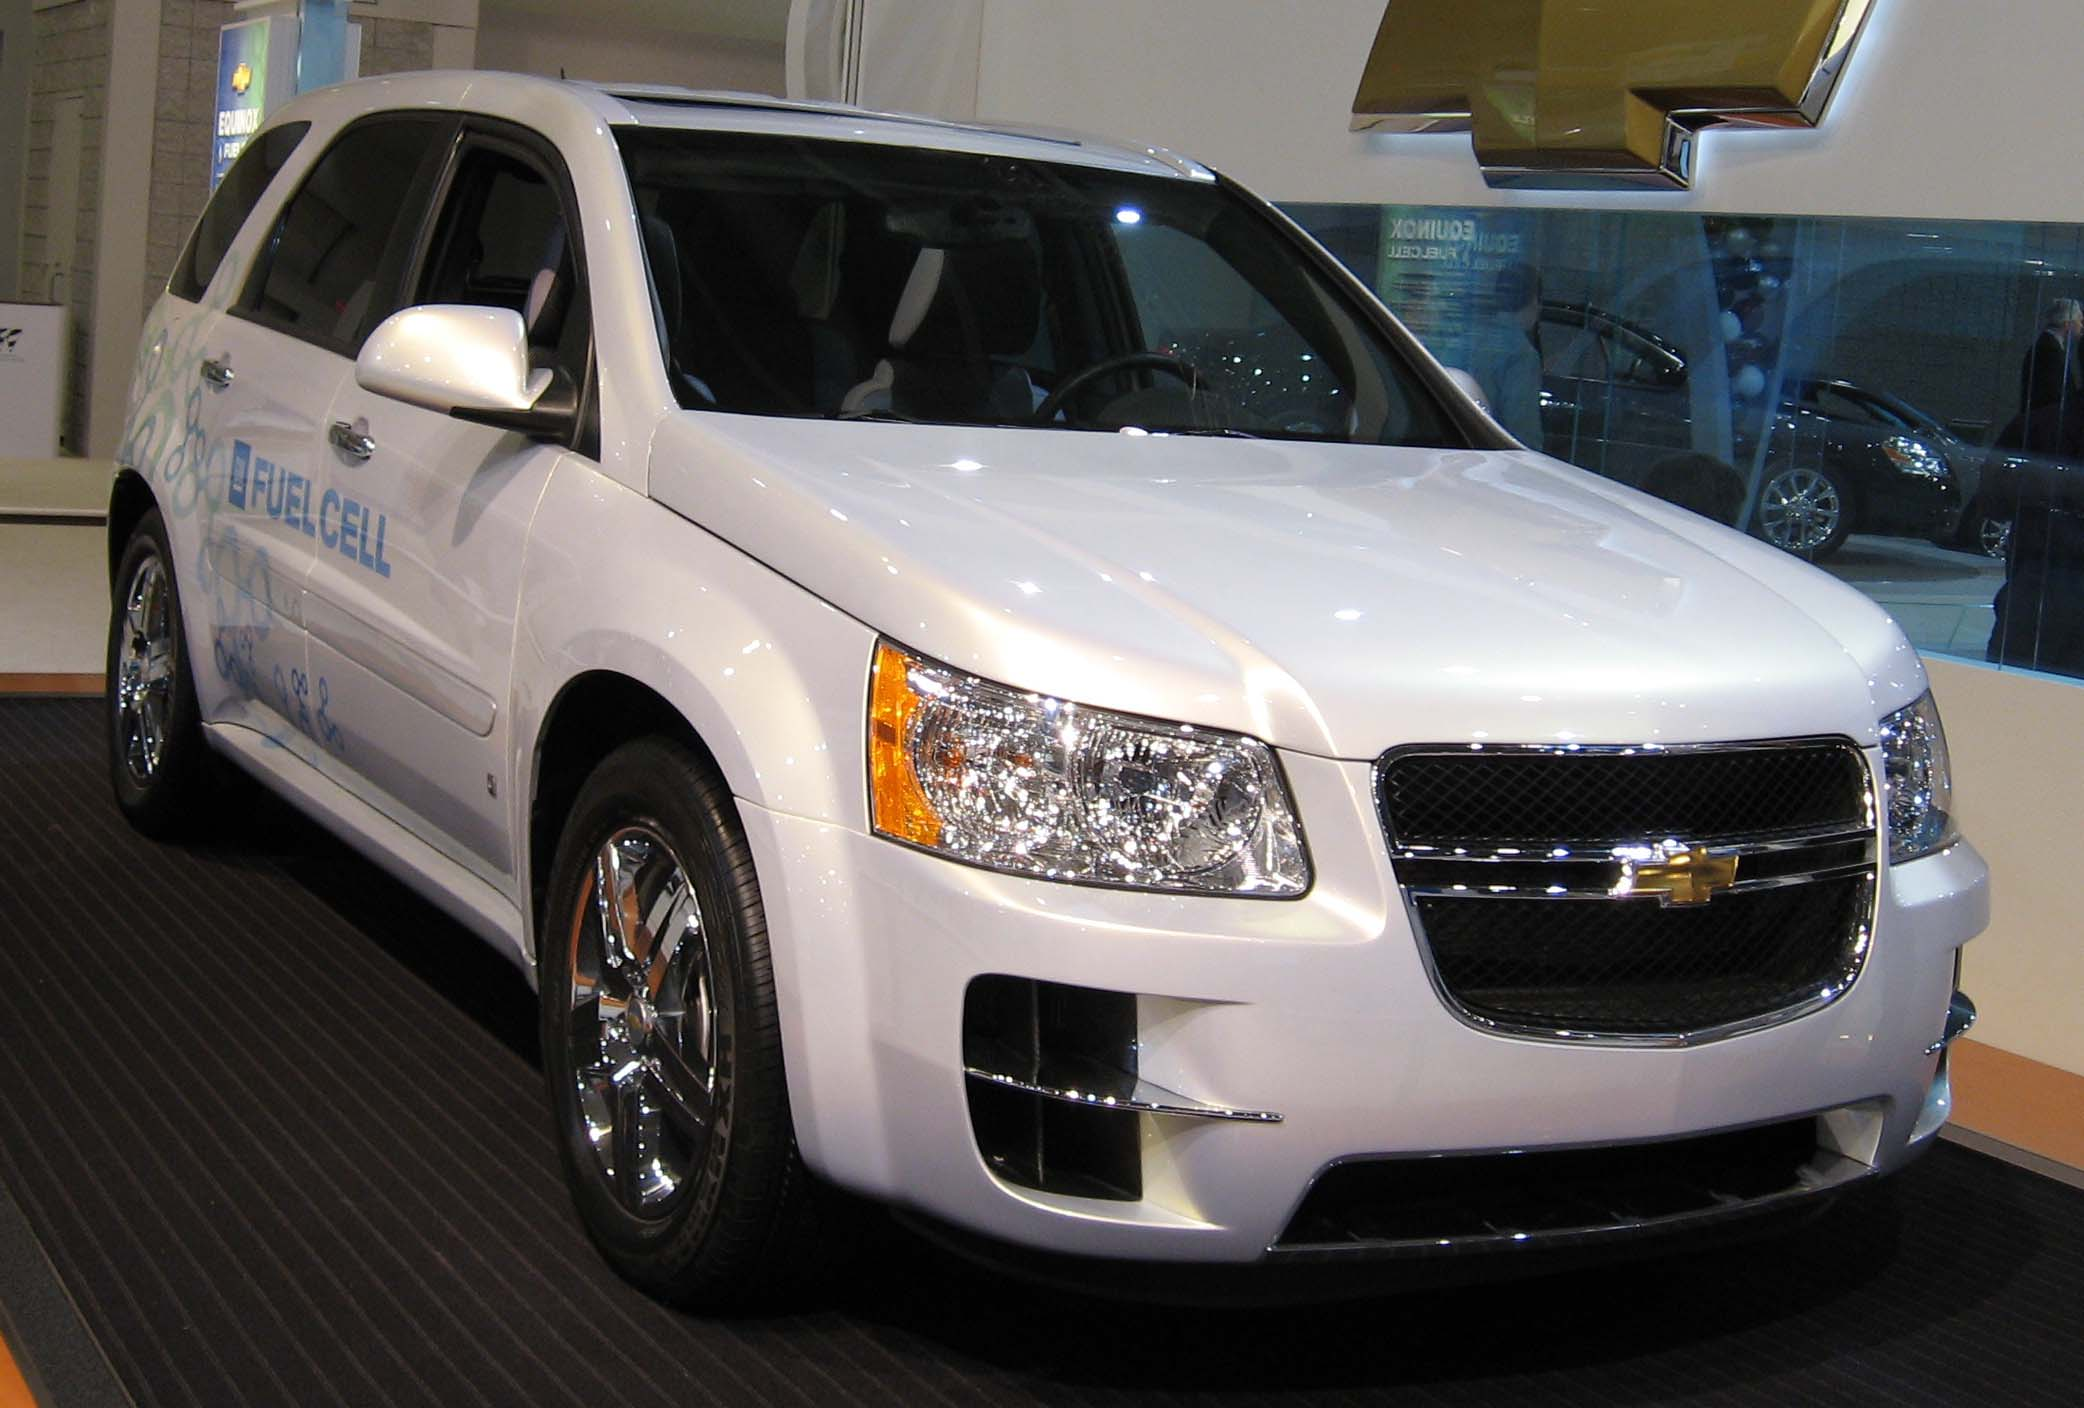 file:chevrolet-equinox-fuelcell-dc - wikimedia commons